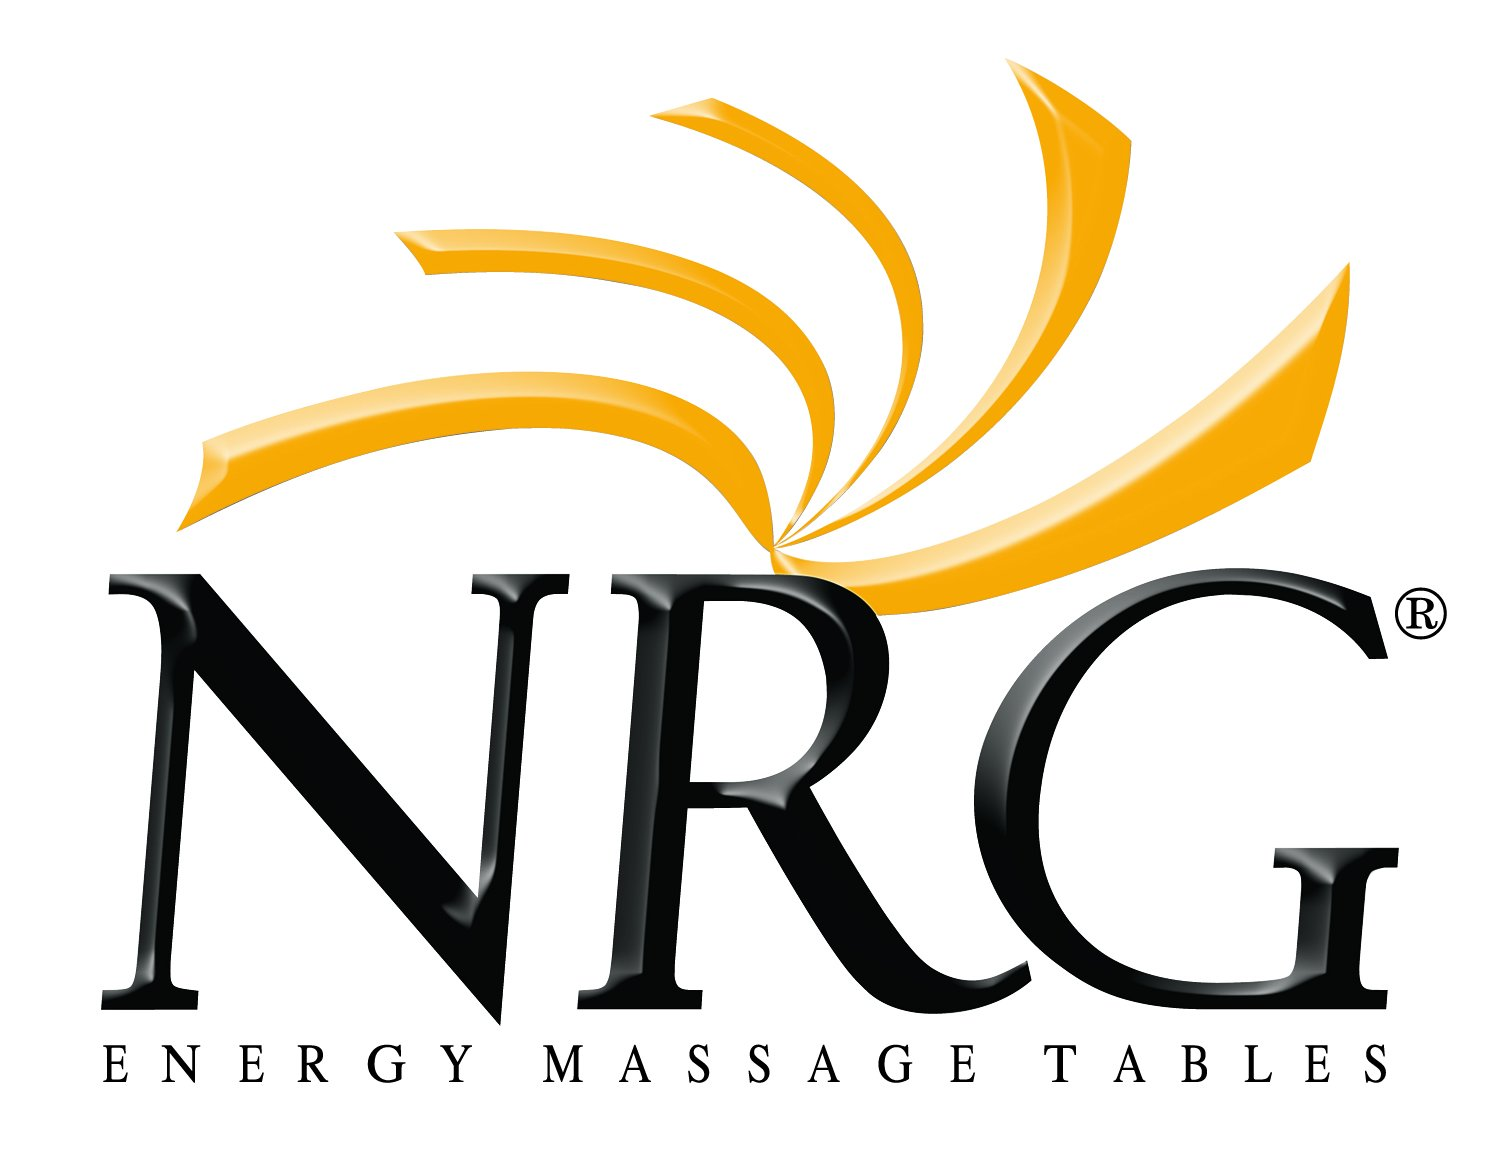 Premium Microfiber Massage Table Sheet Set by NRG - 6 Piece Set Includes 2 Face Cradle Covers, 2 Flat Sheets and 2 Fitted Linens - 100% Double Brushed Polyester - Ultra Soft, Durable - Color: Ocean by NRG